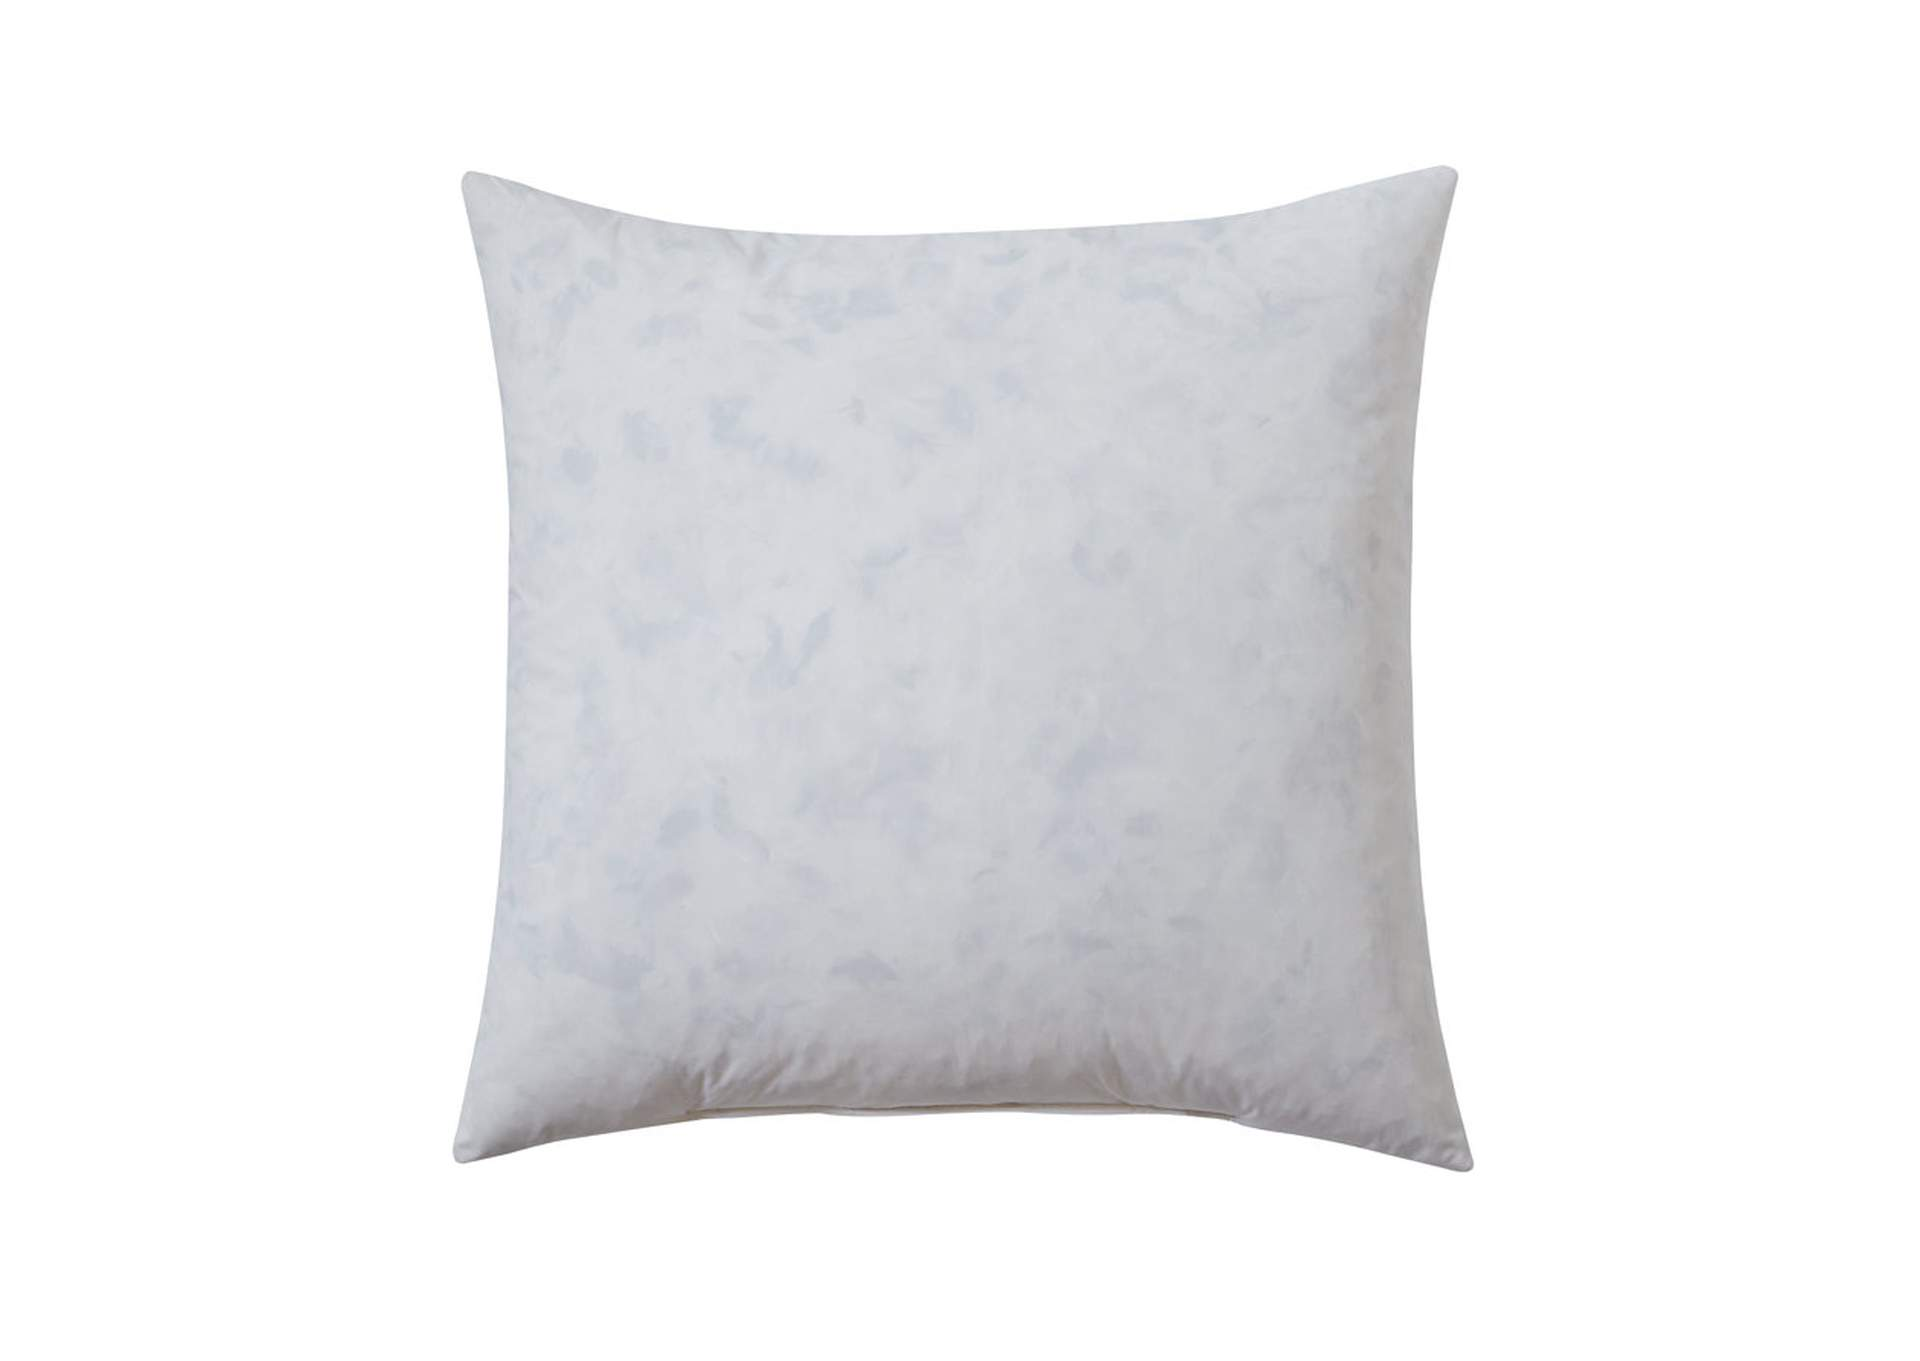 Feather fill - White Medium Pillow Insert (4/CS),Signature Design By Ashley